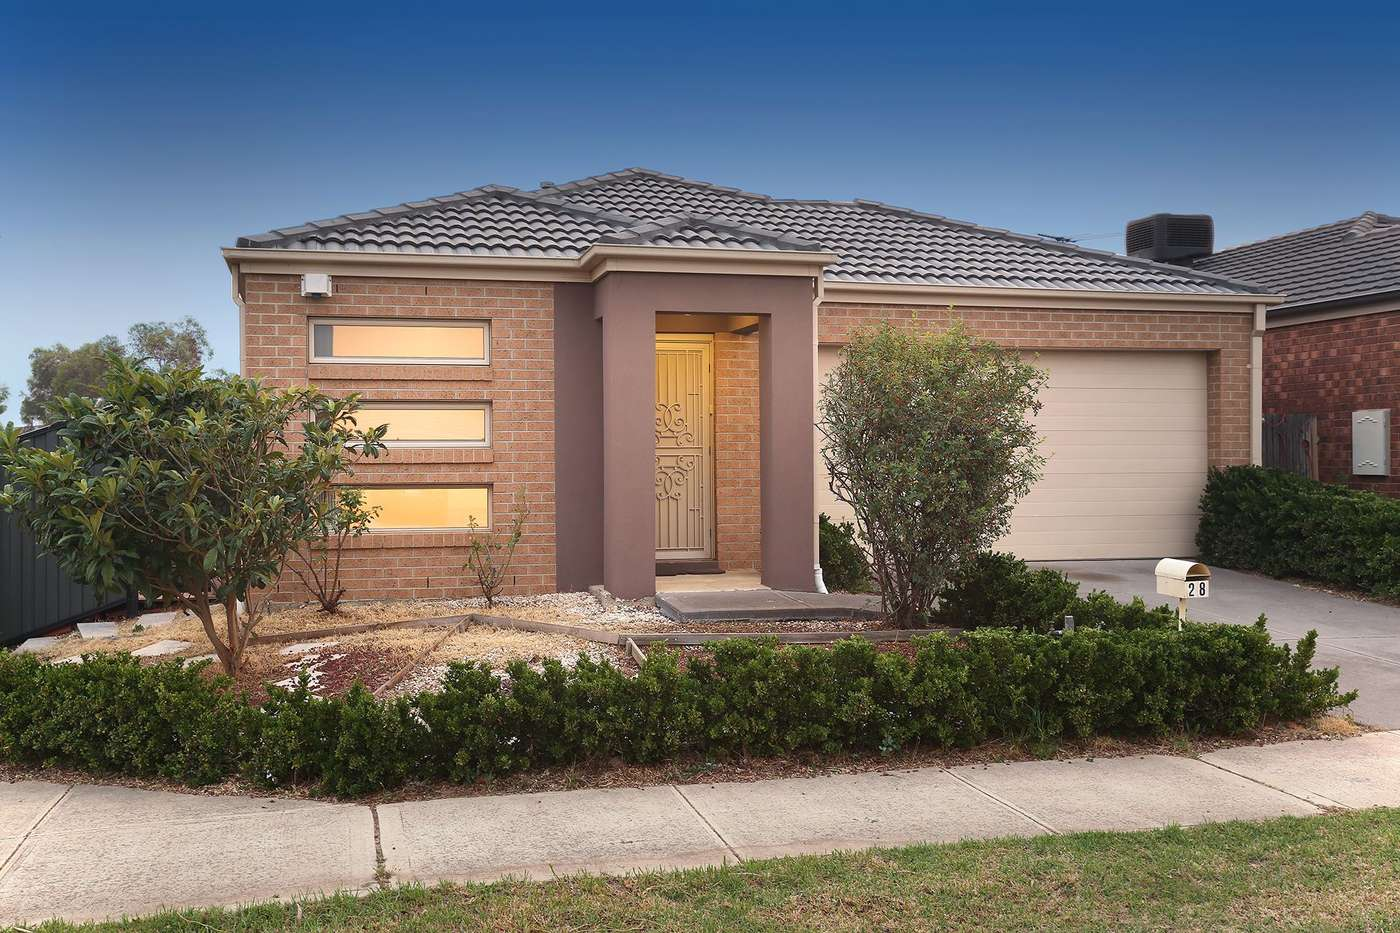 Main view of Homely house listing, 28 Regal Road, Point Cook, VIC 3030